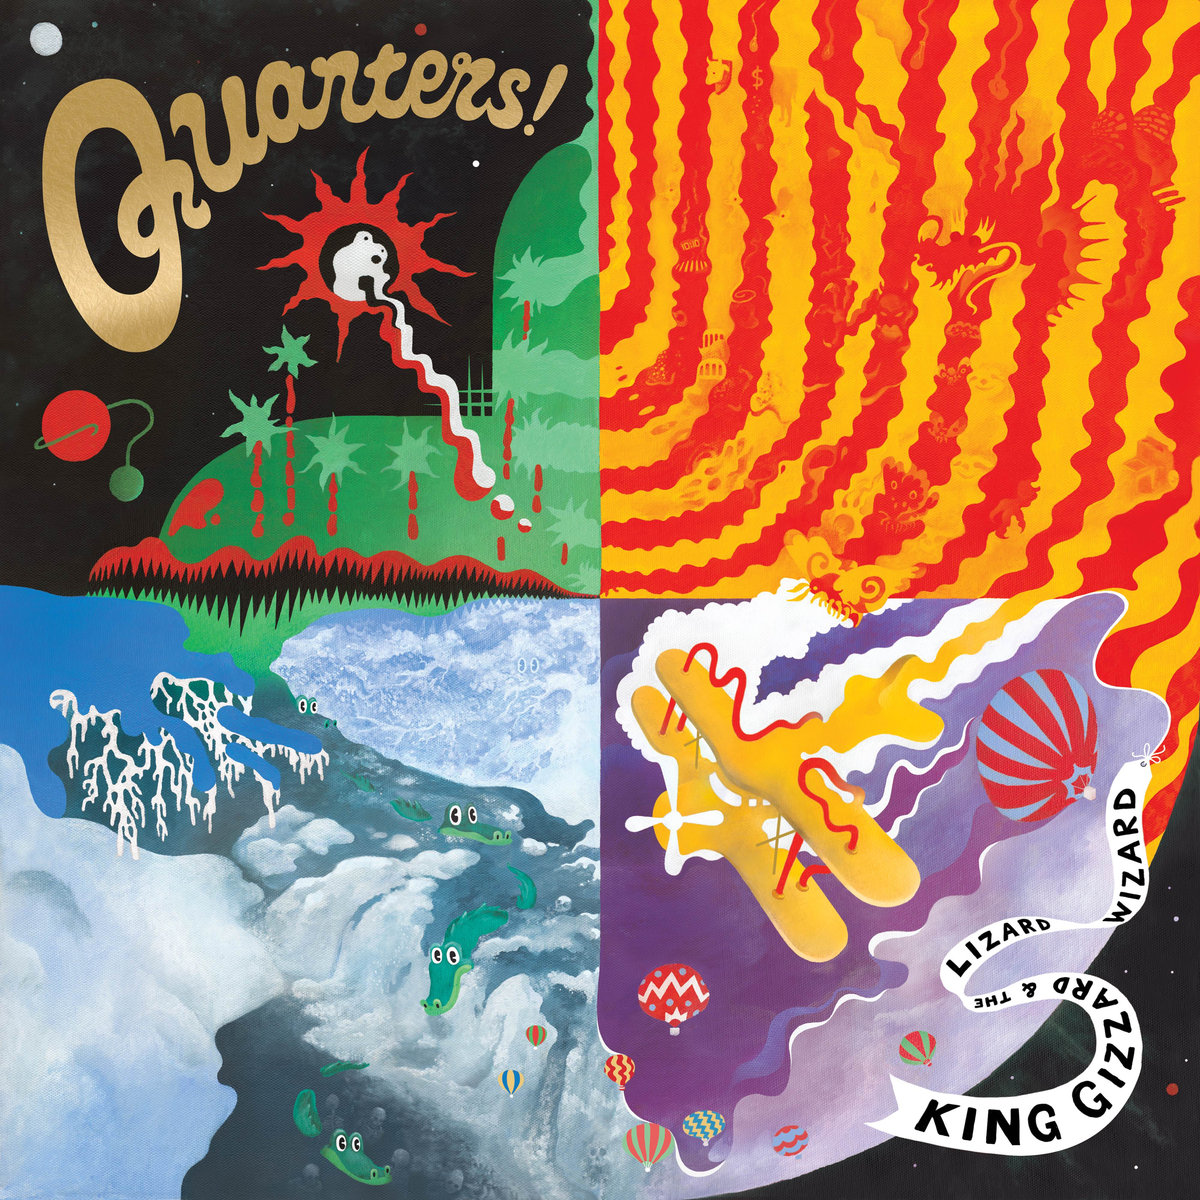 King Gizzard & The Lizard Wizard - Quarters! (2015)